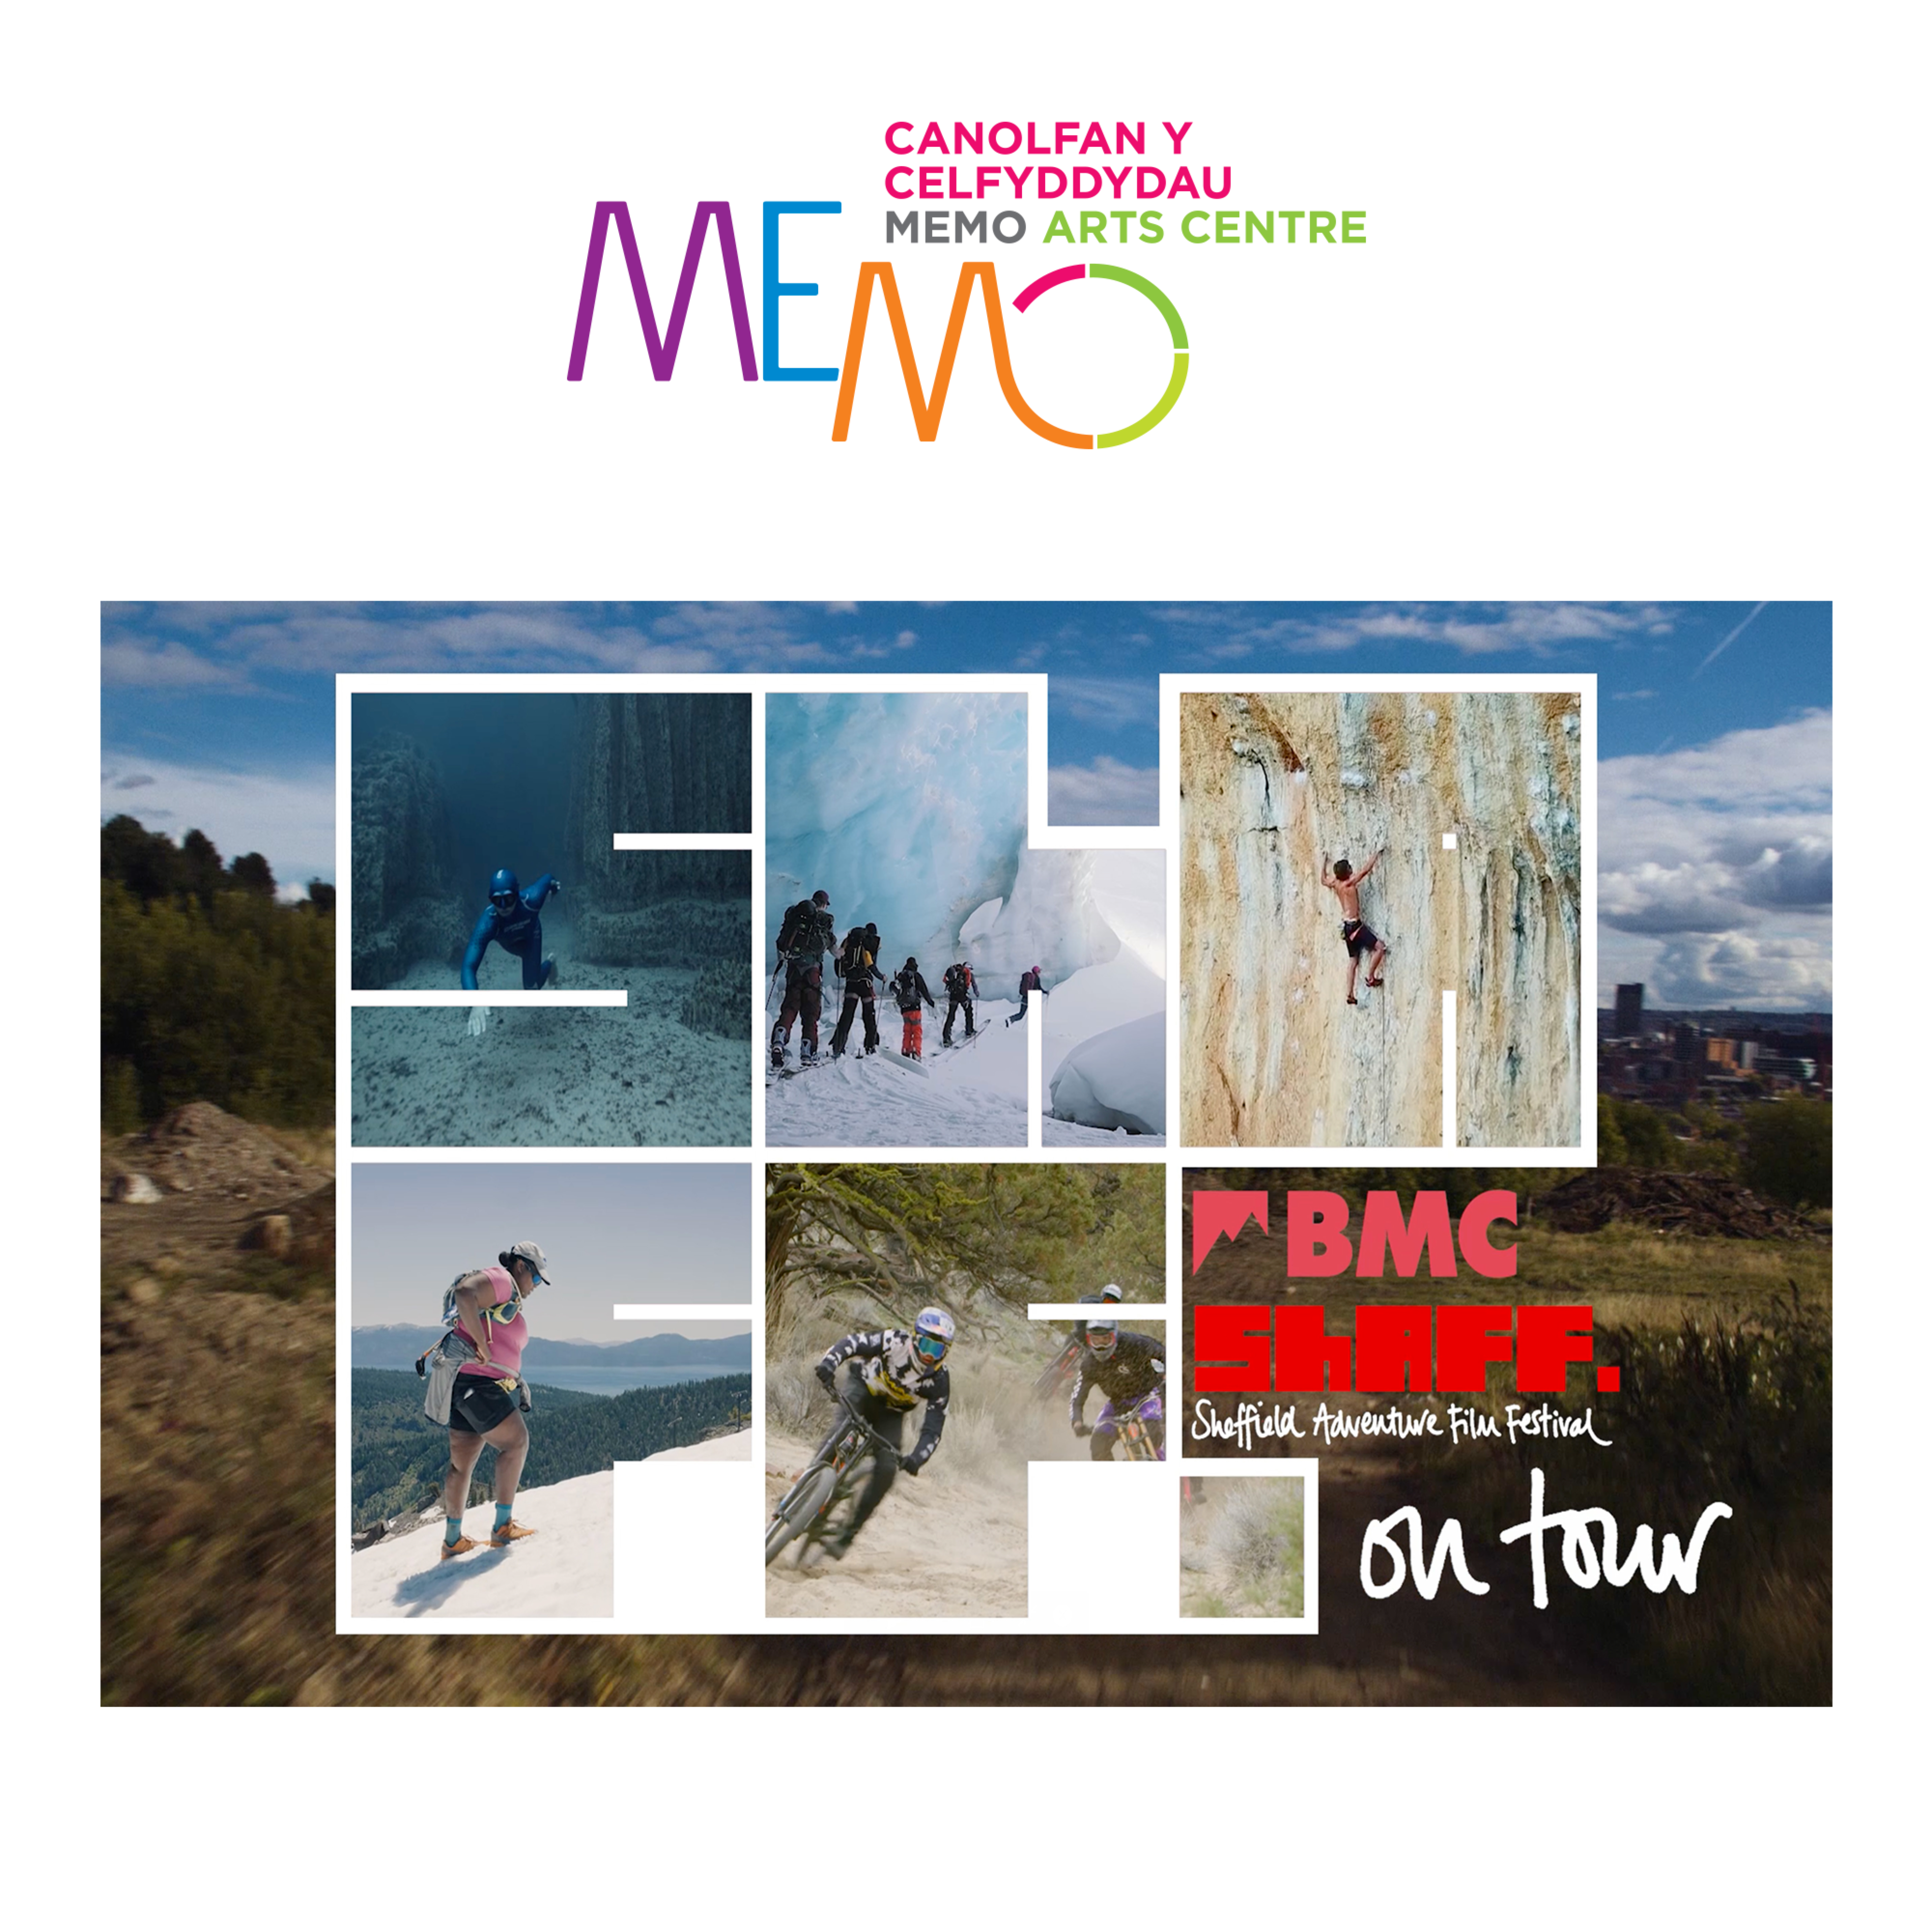 The Best of ShAFF 2020 at Memo Arts Centre